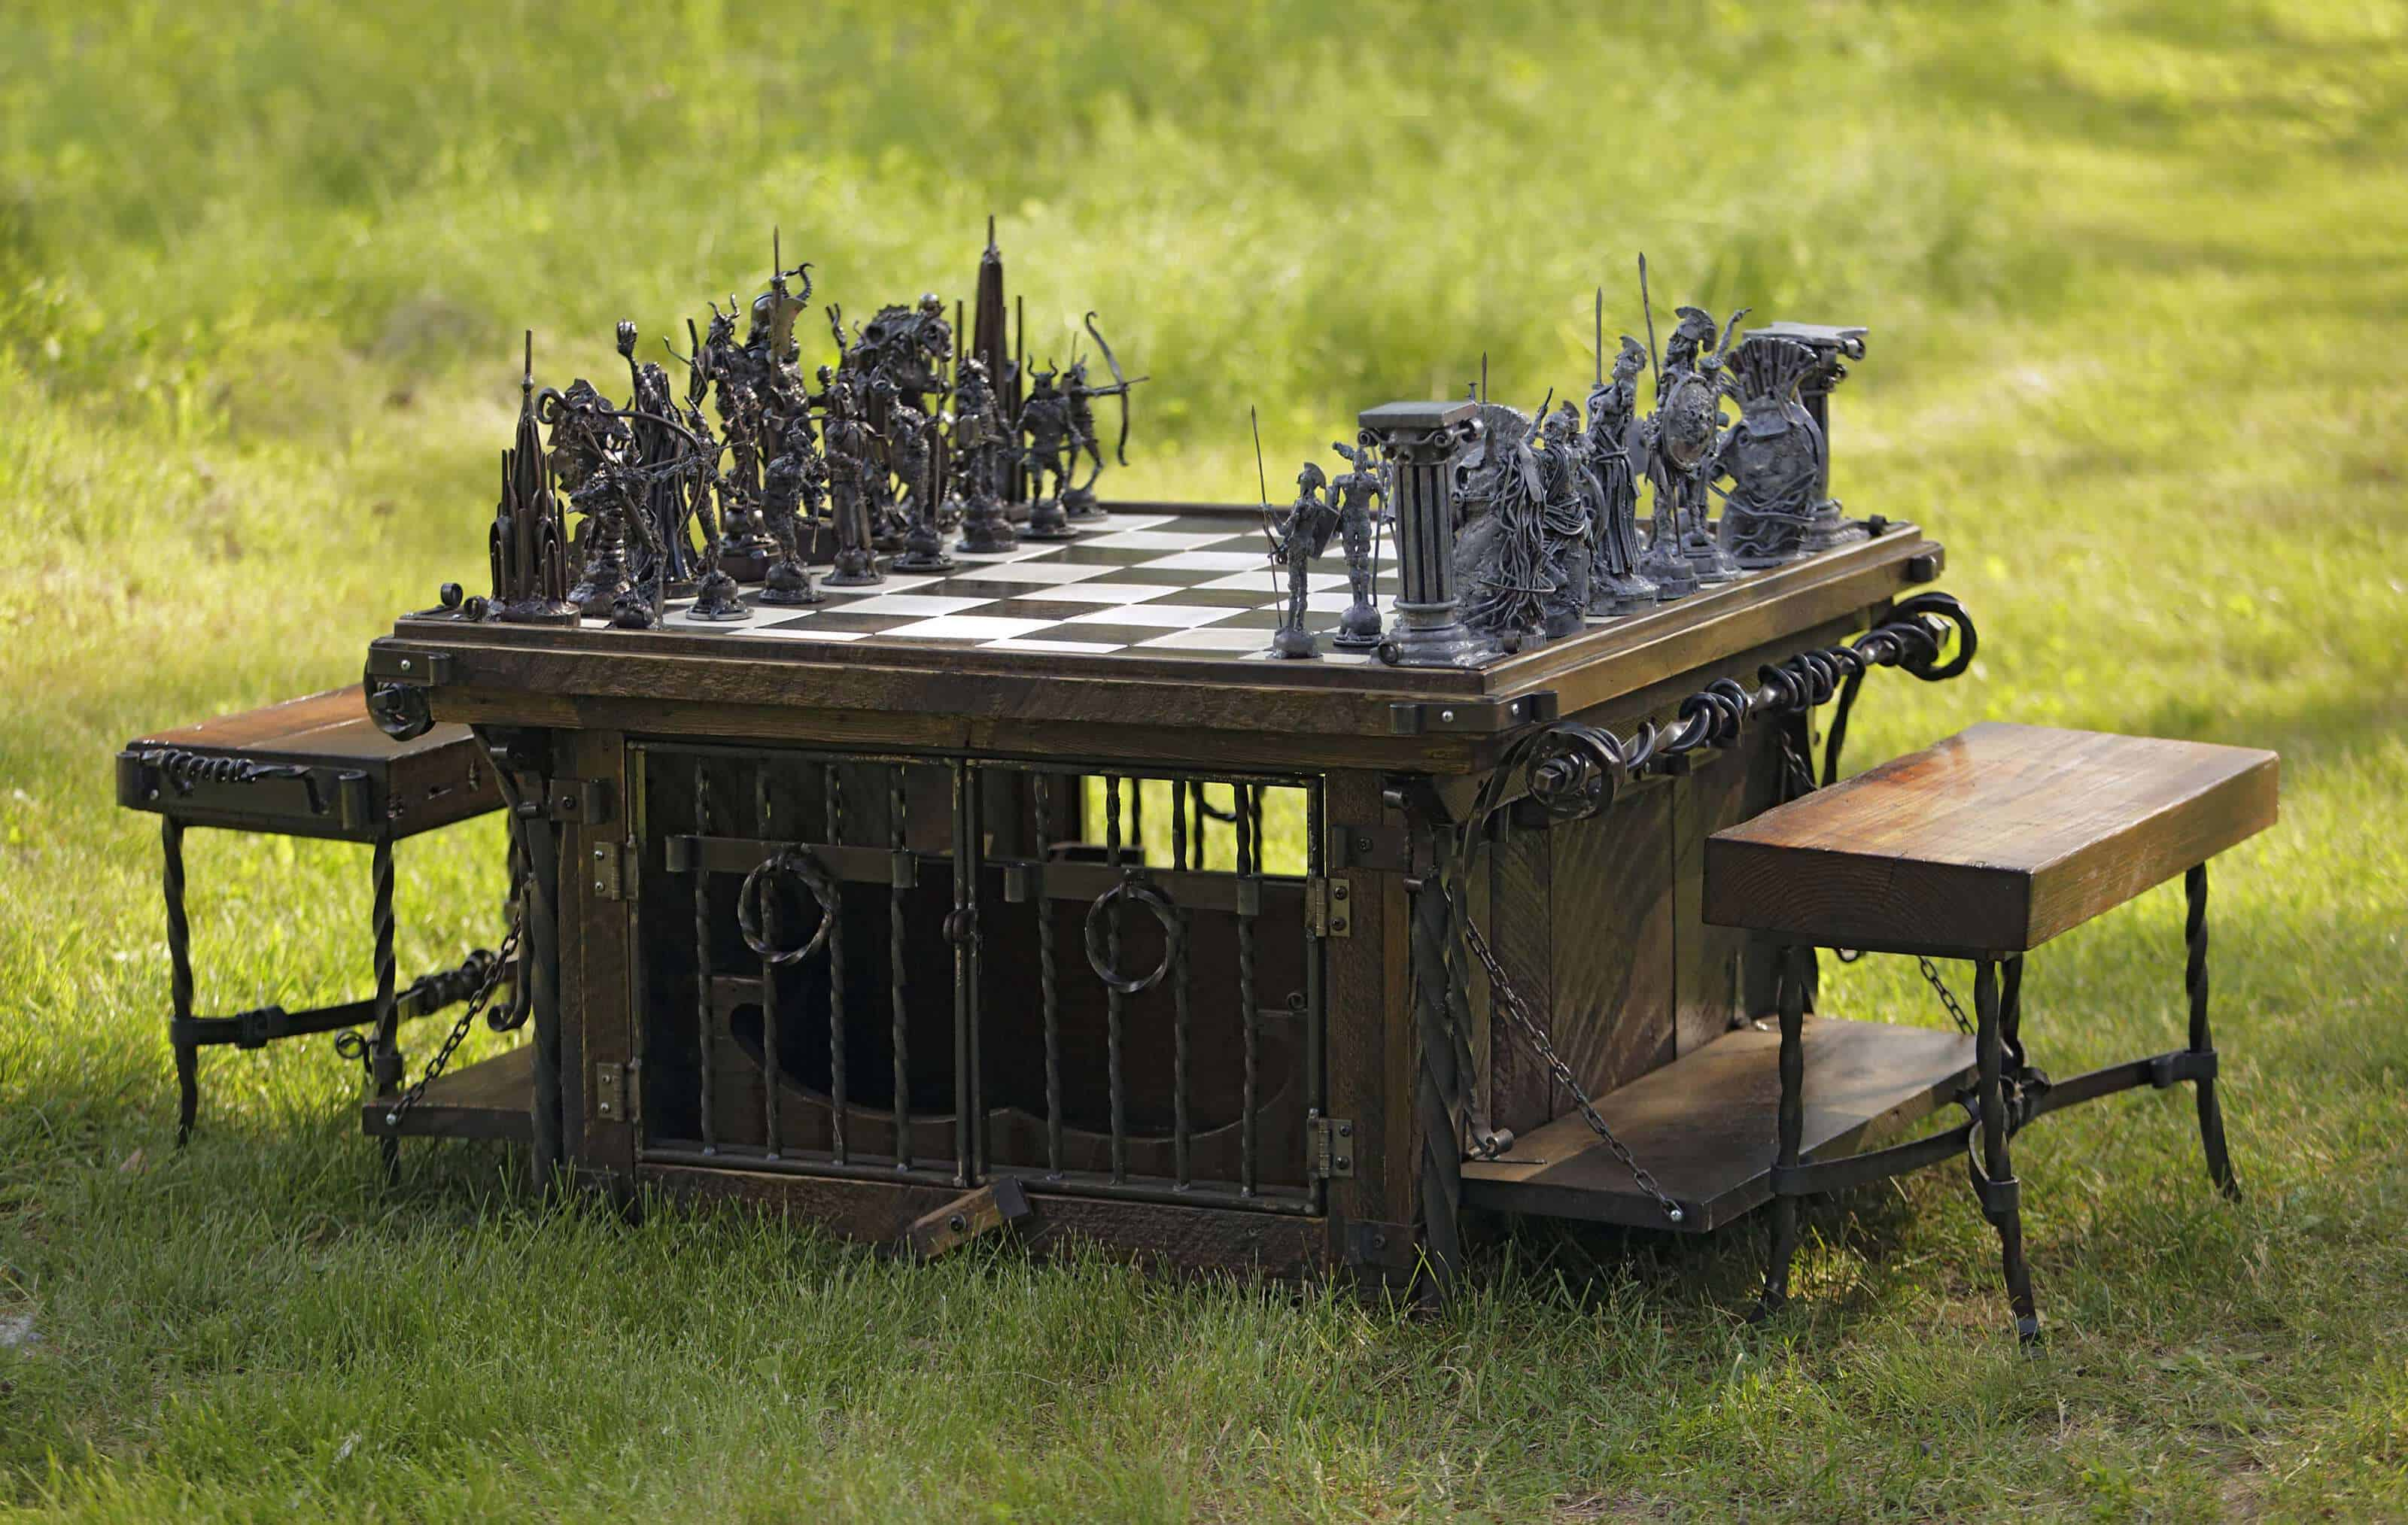 Take warriors from ancient Greece, put them in an epic battle with medieval knights, add the imagination of metal sculptor Matthew Evald Johnson, and the result is Chess mastery. Photo courtesy of Paradise City Arts Festival in Northampton